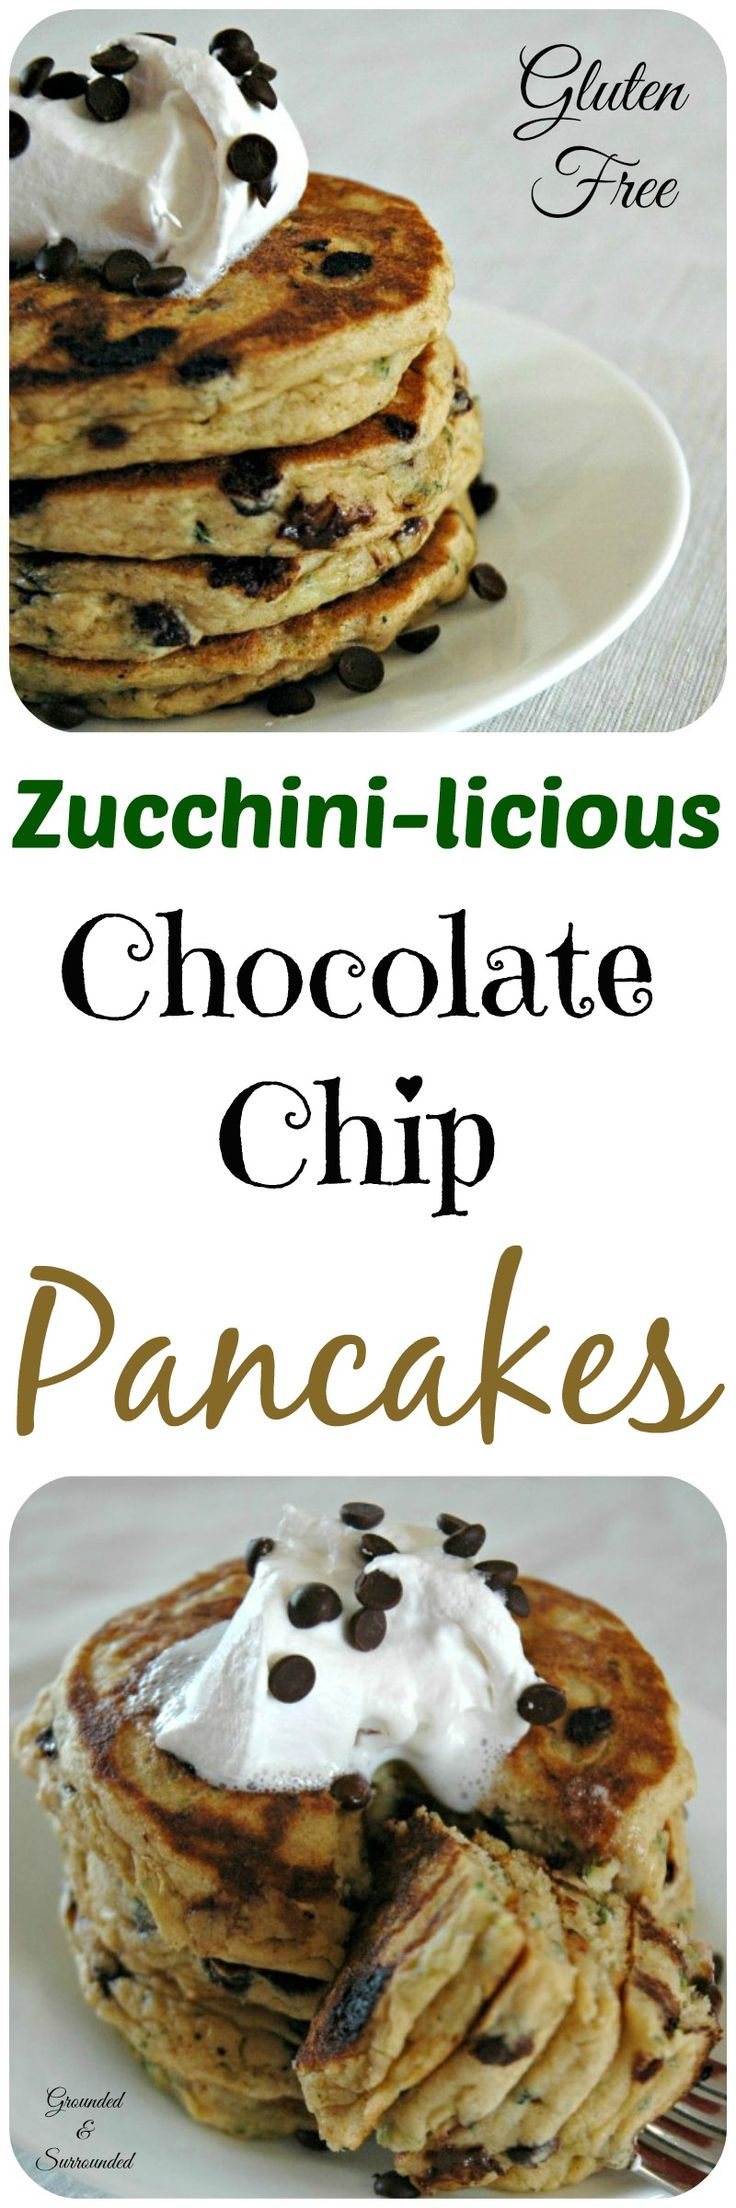 Zucchini has never tasted better! Pancakes will never be the same after you have made these beauties. They are the perfect gluten-free breakfast, snack, or dessert! A healthy splurge never hurt anyone! http://www.groundedandsurrounded.com/recipe/zucchini-licious-pancakes/